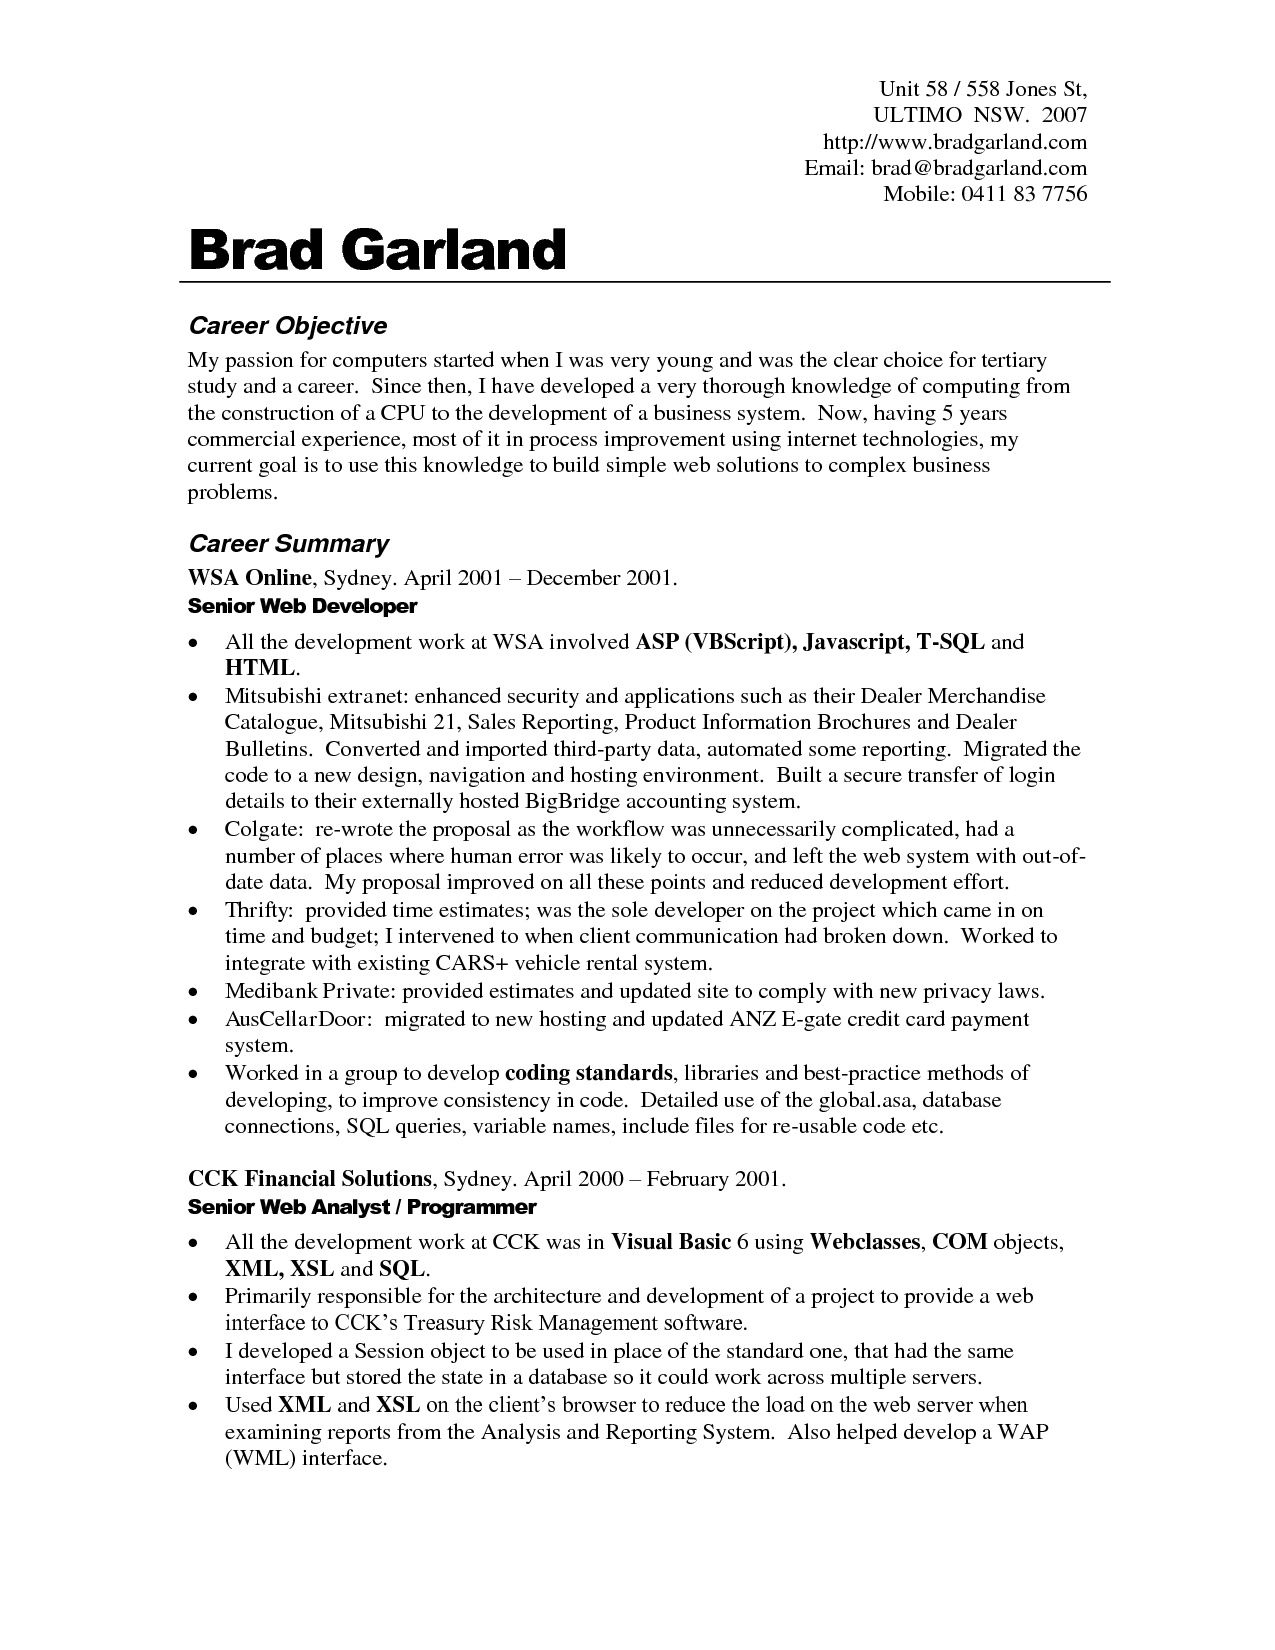 Exceptional Career Objective Resume Examples For Example Your Training Goals And  Objectives Rufoot Resumes For How To Write Career Goals